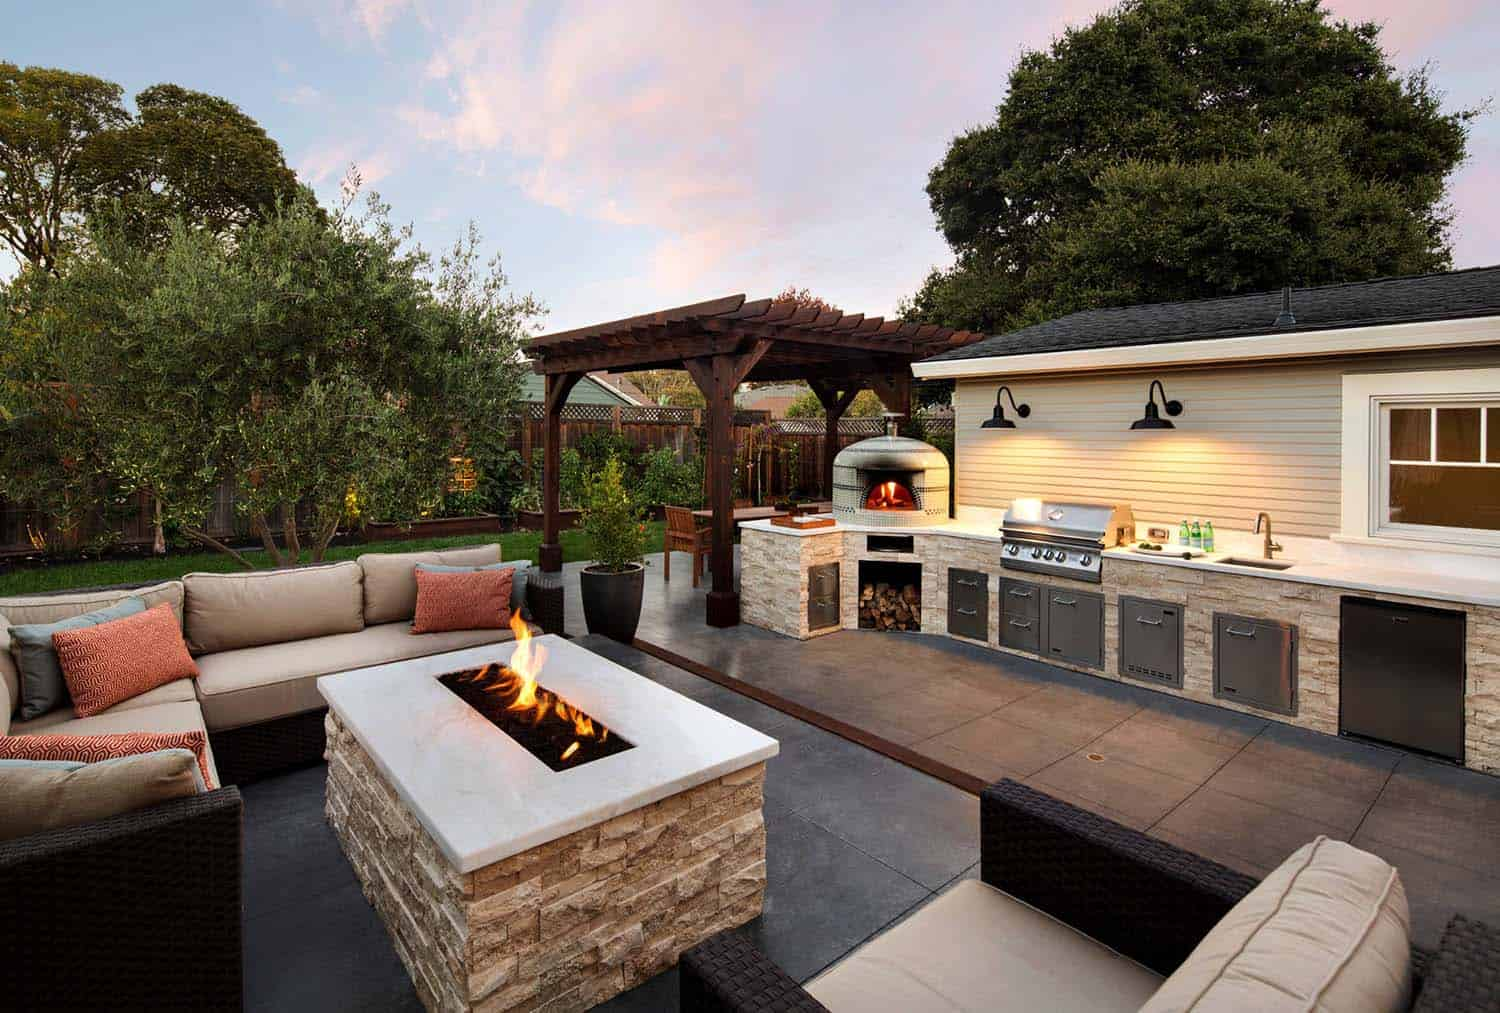 33 Fabulous Ideas For Creating Beautiful Outdoor Living Spaces on Garden Living Space id=26760